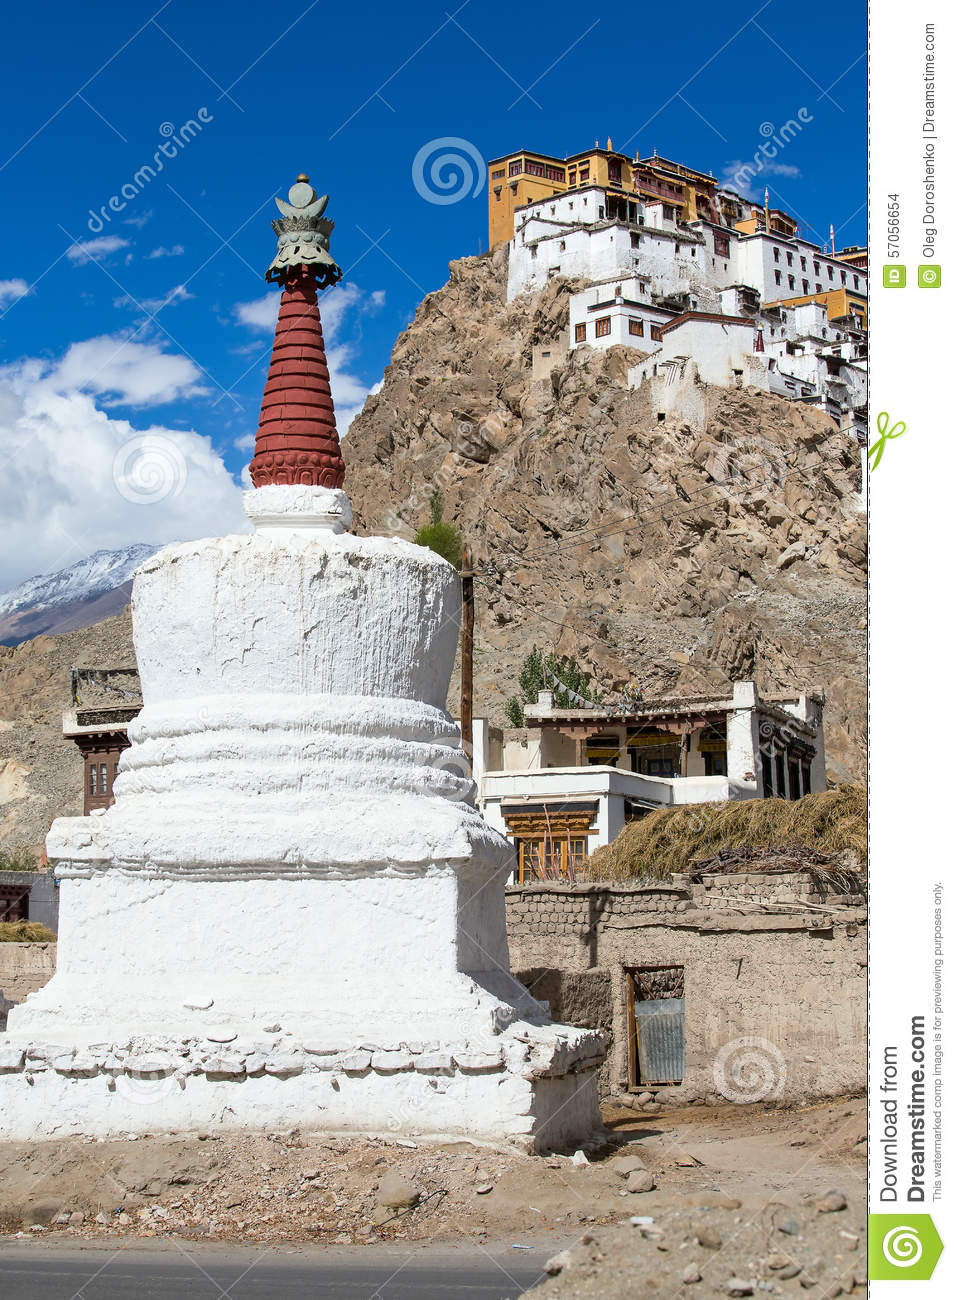 Witte stupa in Tiksey-klooster Ladakh, India